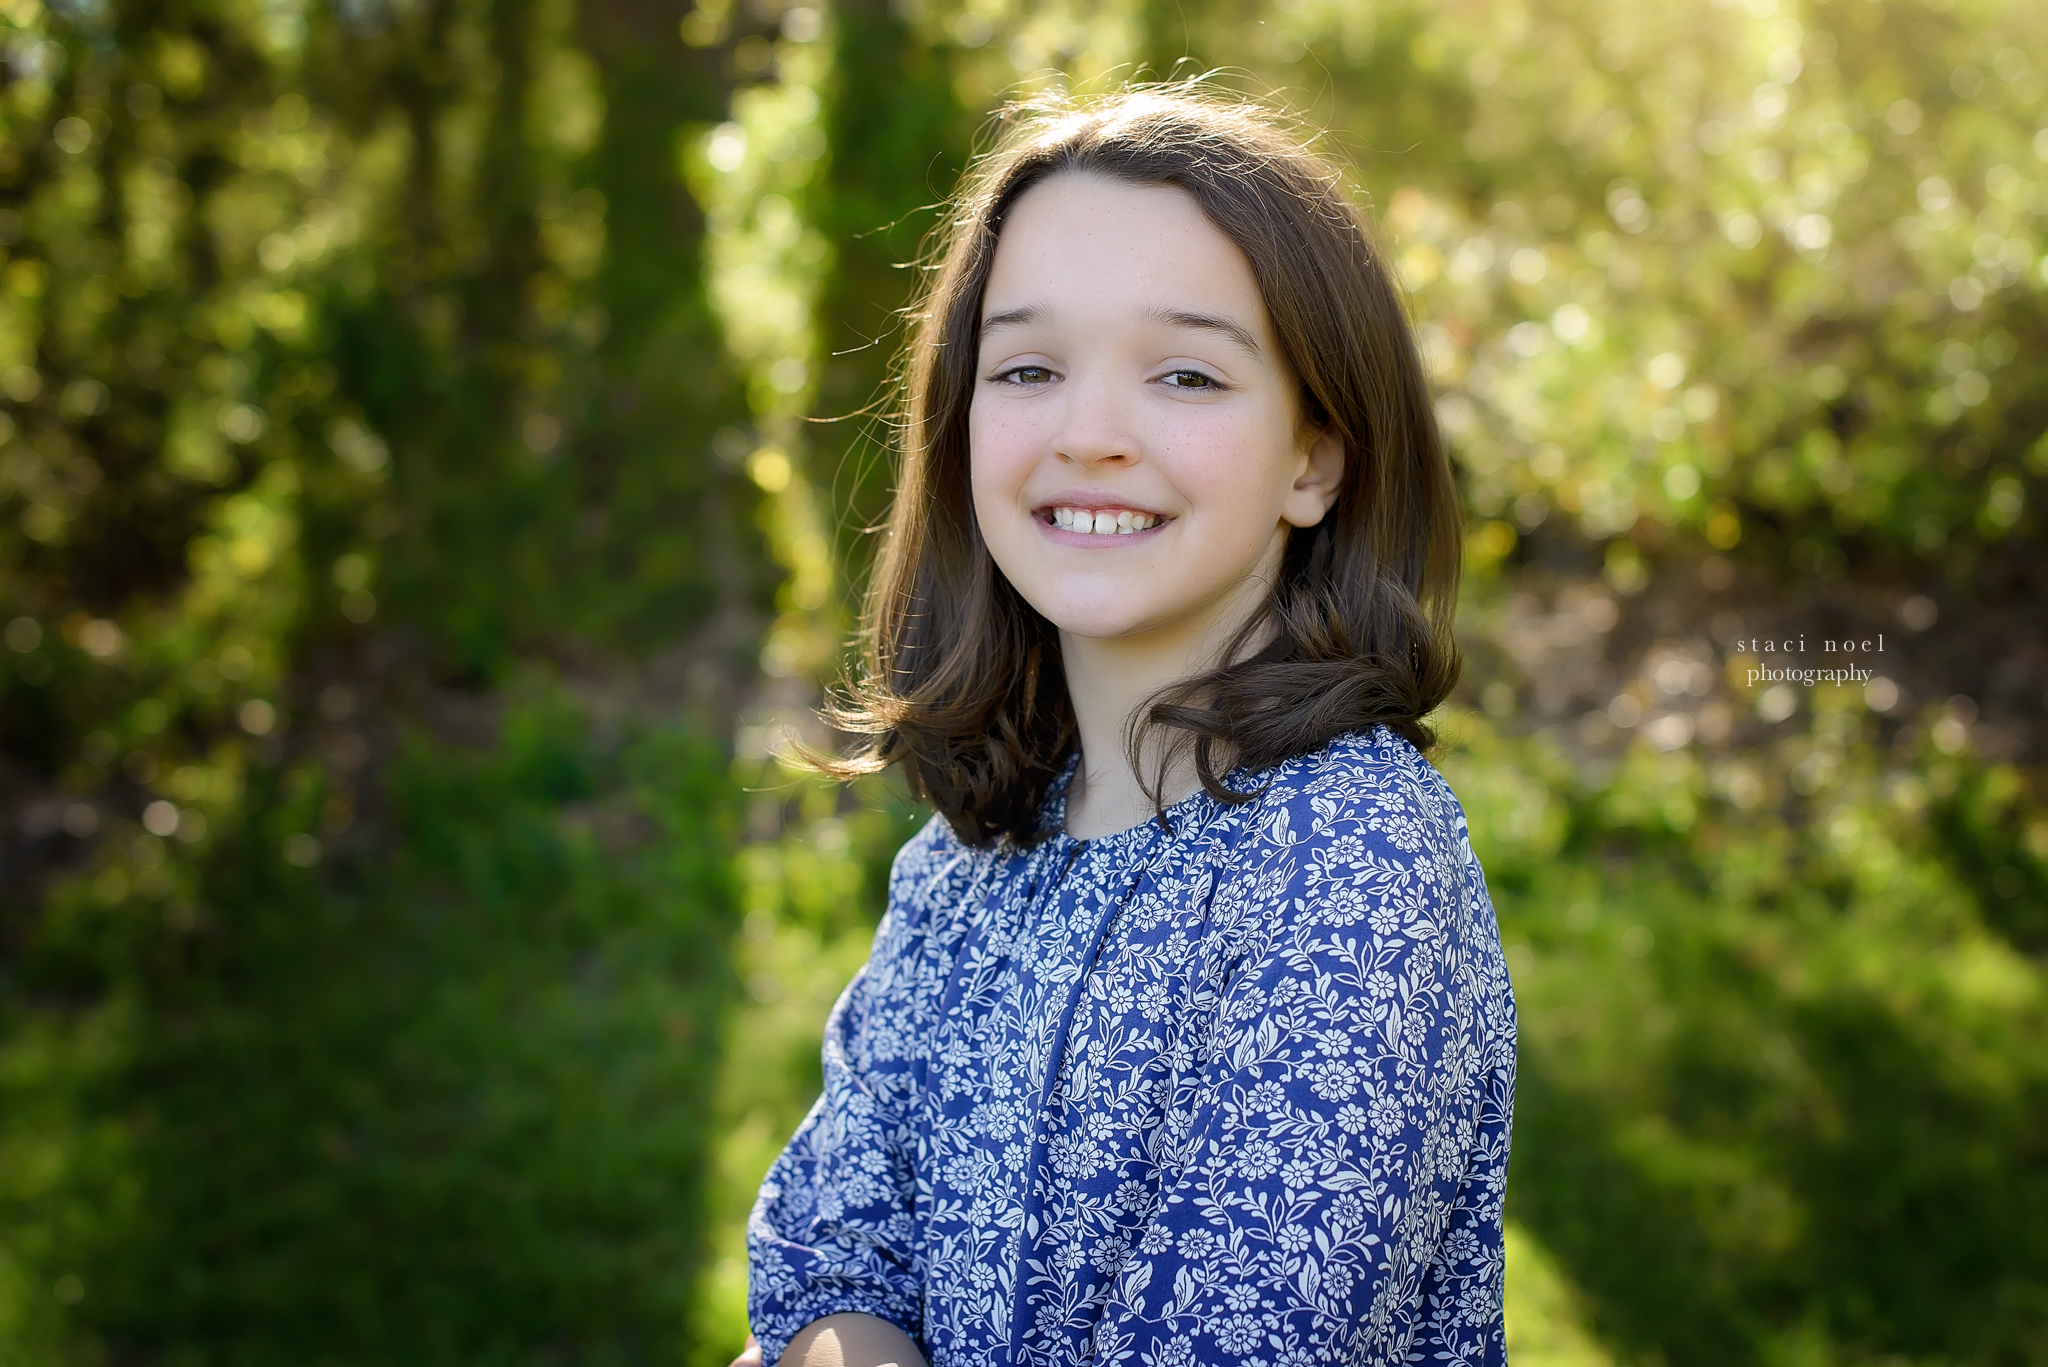 charlotte's best family photographer staci noel photographer takes image of young girl